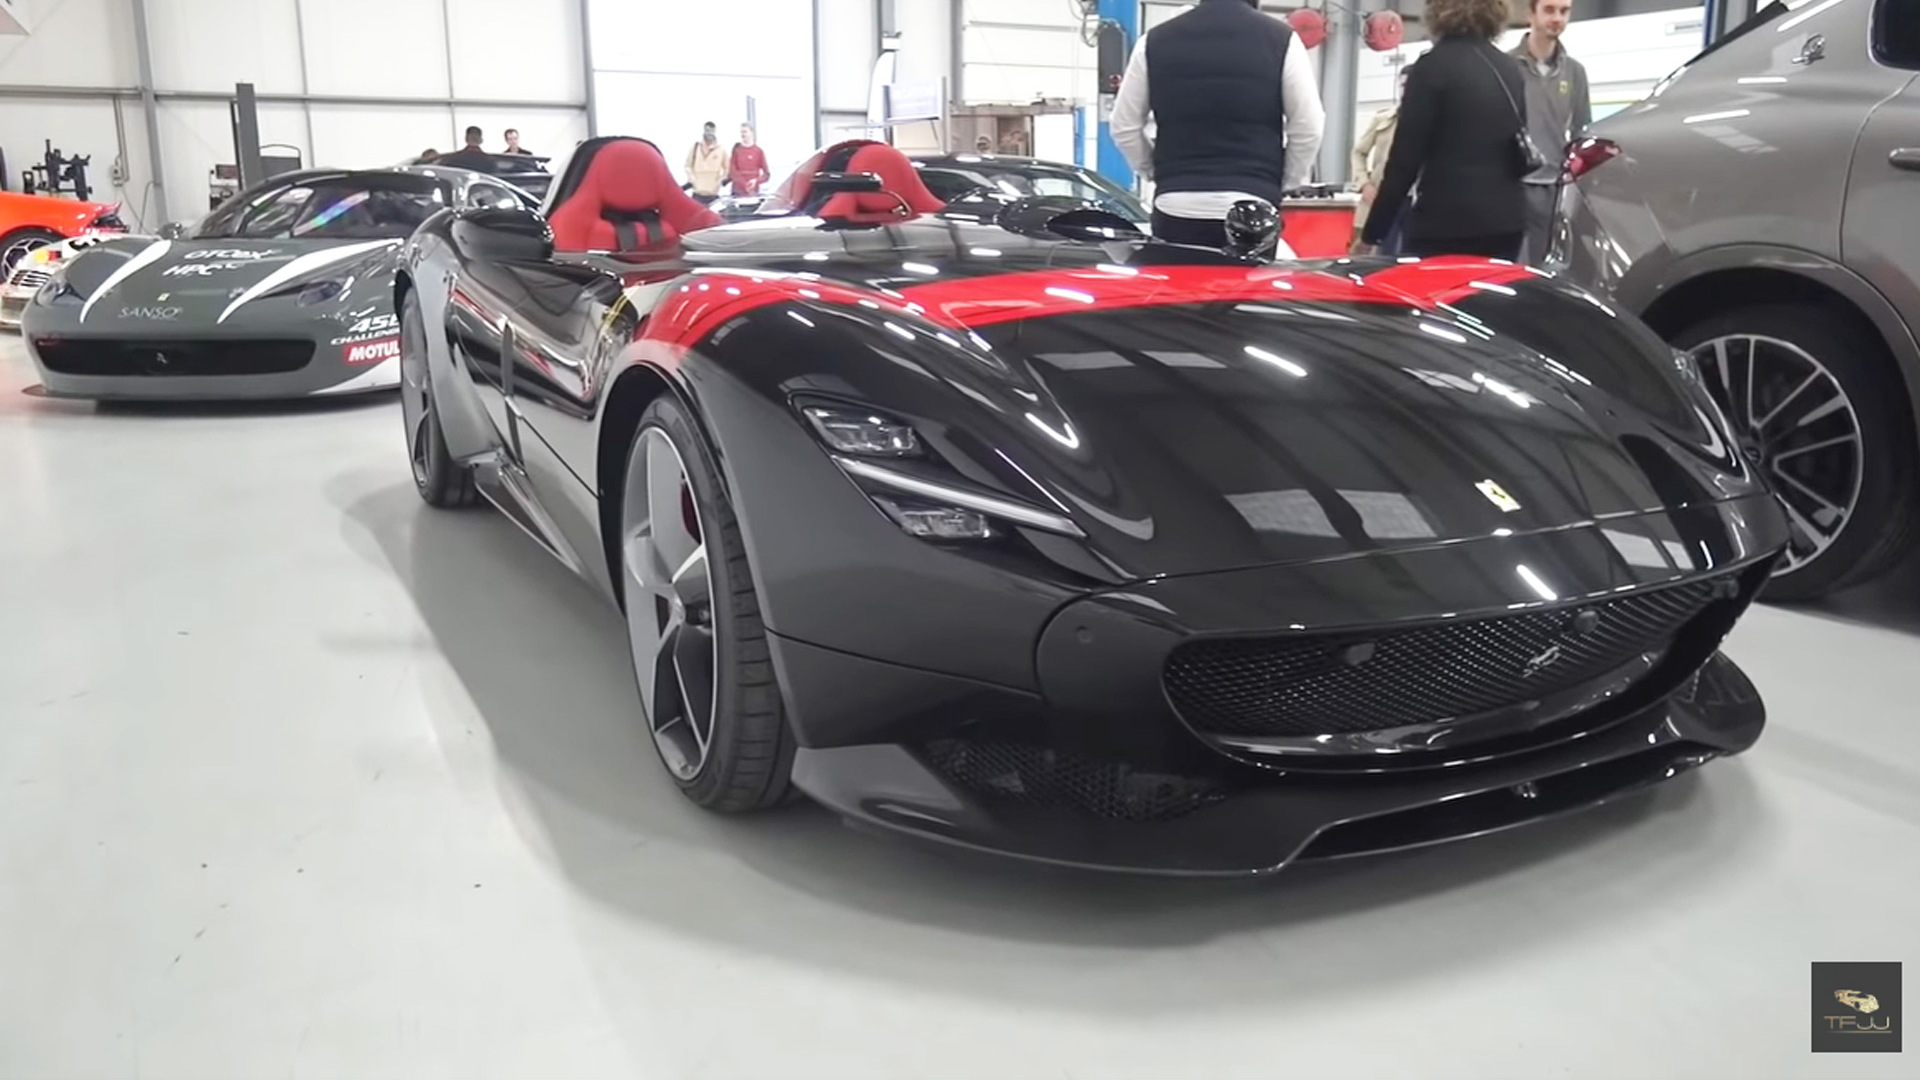 Ferrari Monza SP2 video